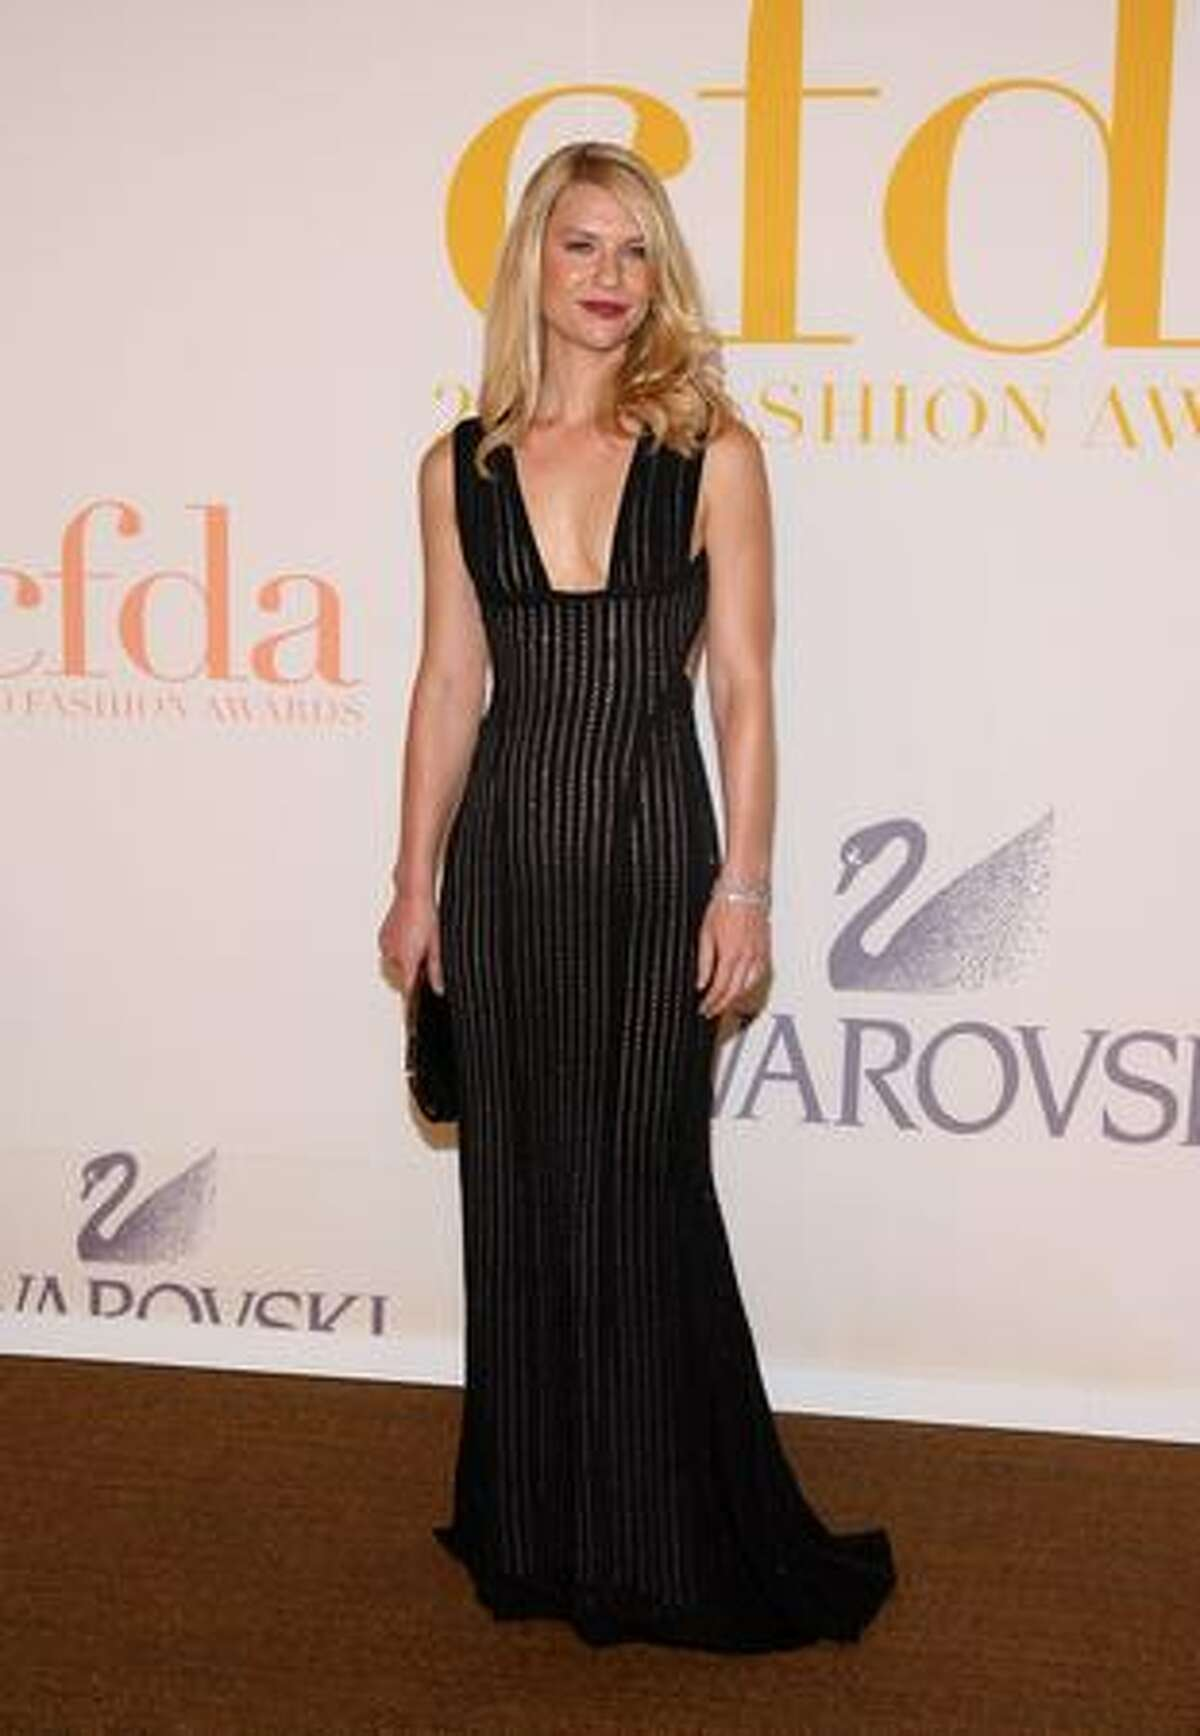 Actress Claire Danes attends the 2009 CFDA Fashion Awards at Alice Tully Hall, Lincoln Center in New York on Monday, June 15, 2009.